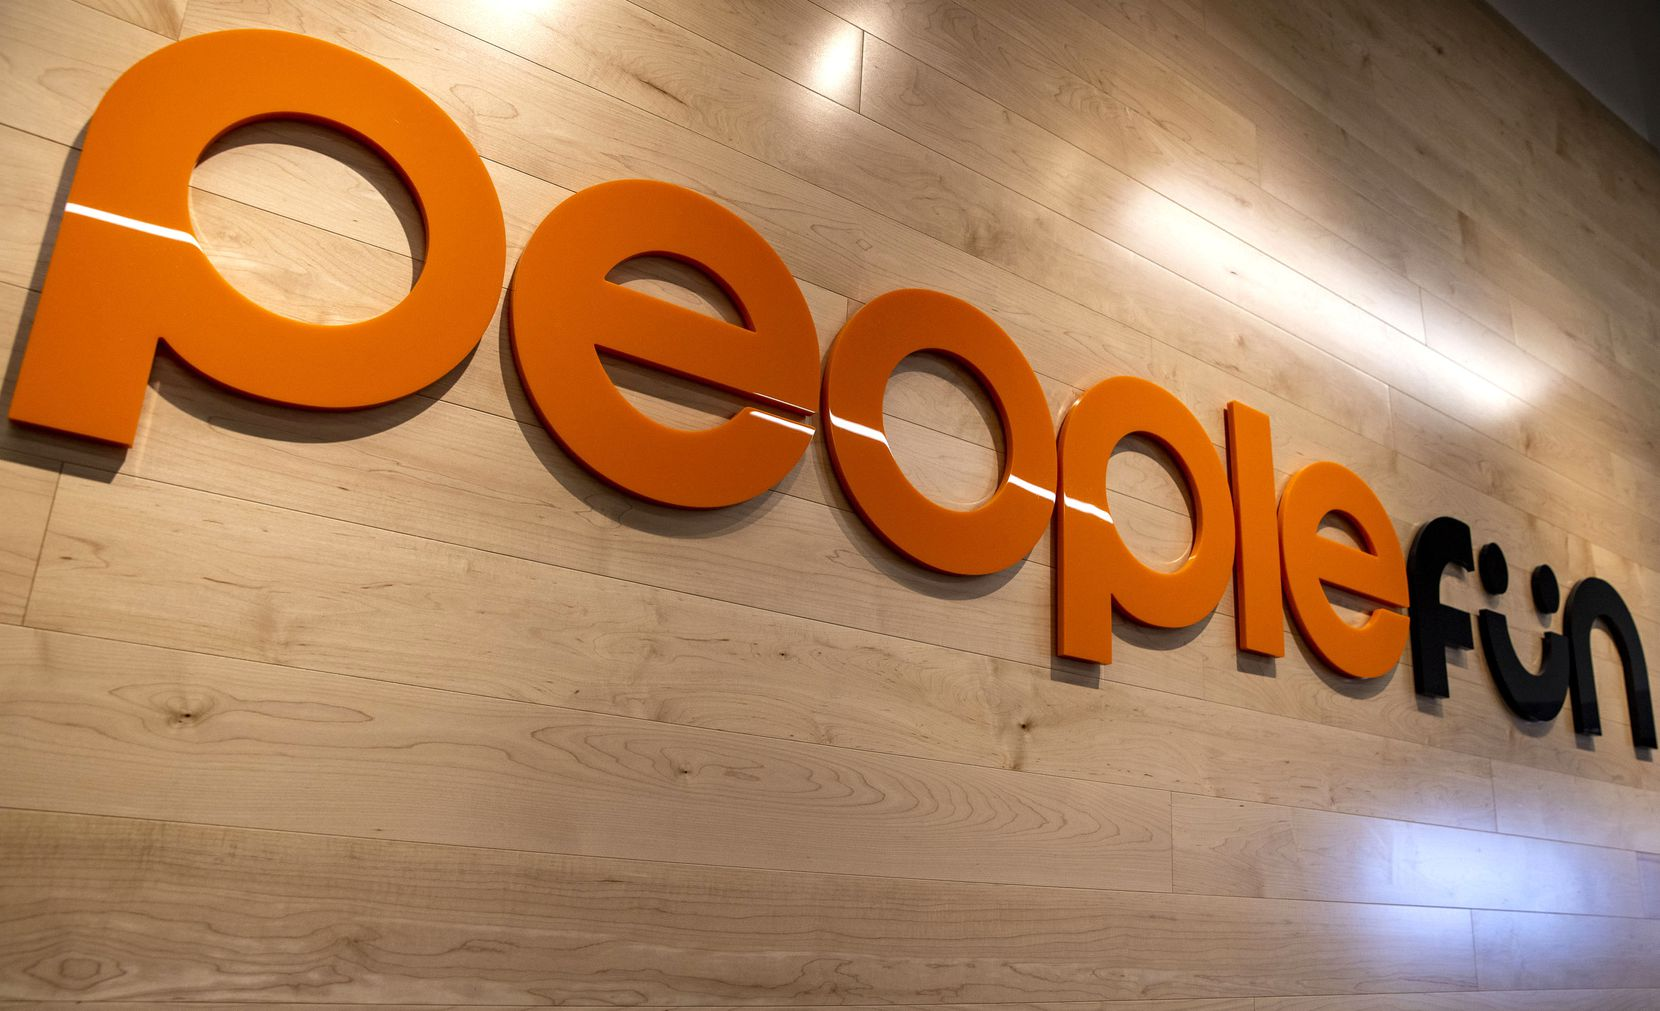 The PeopleFun office in Richardson.